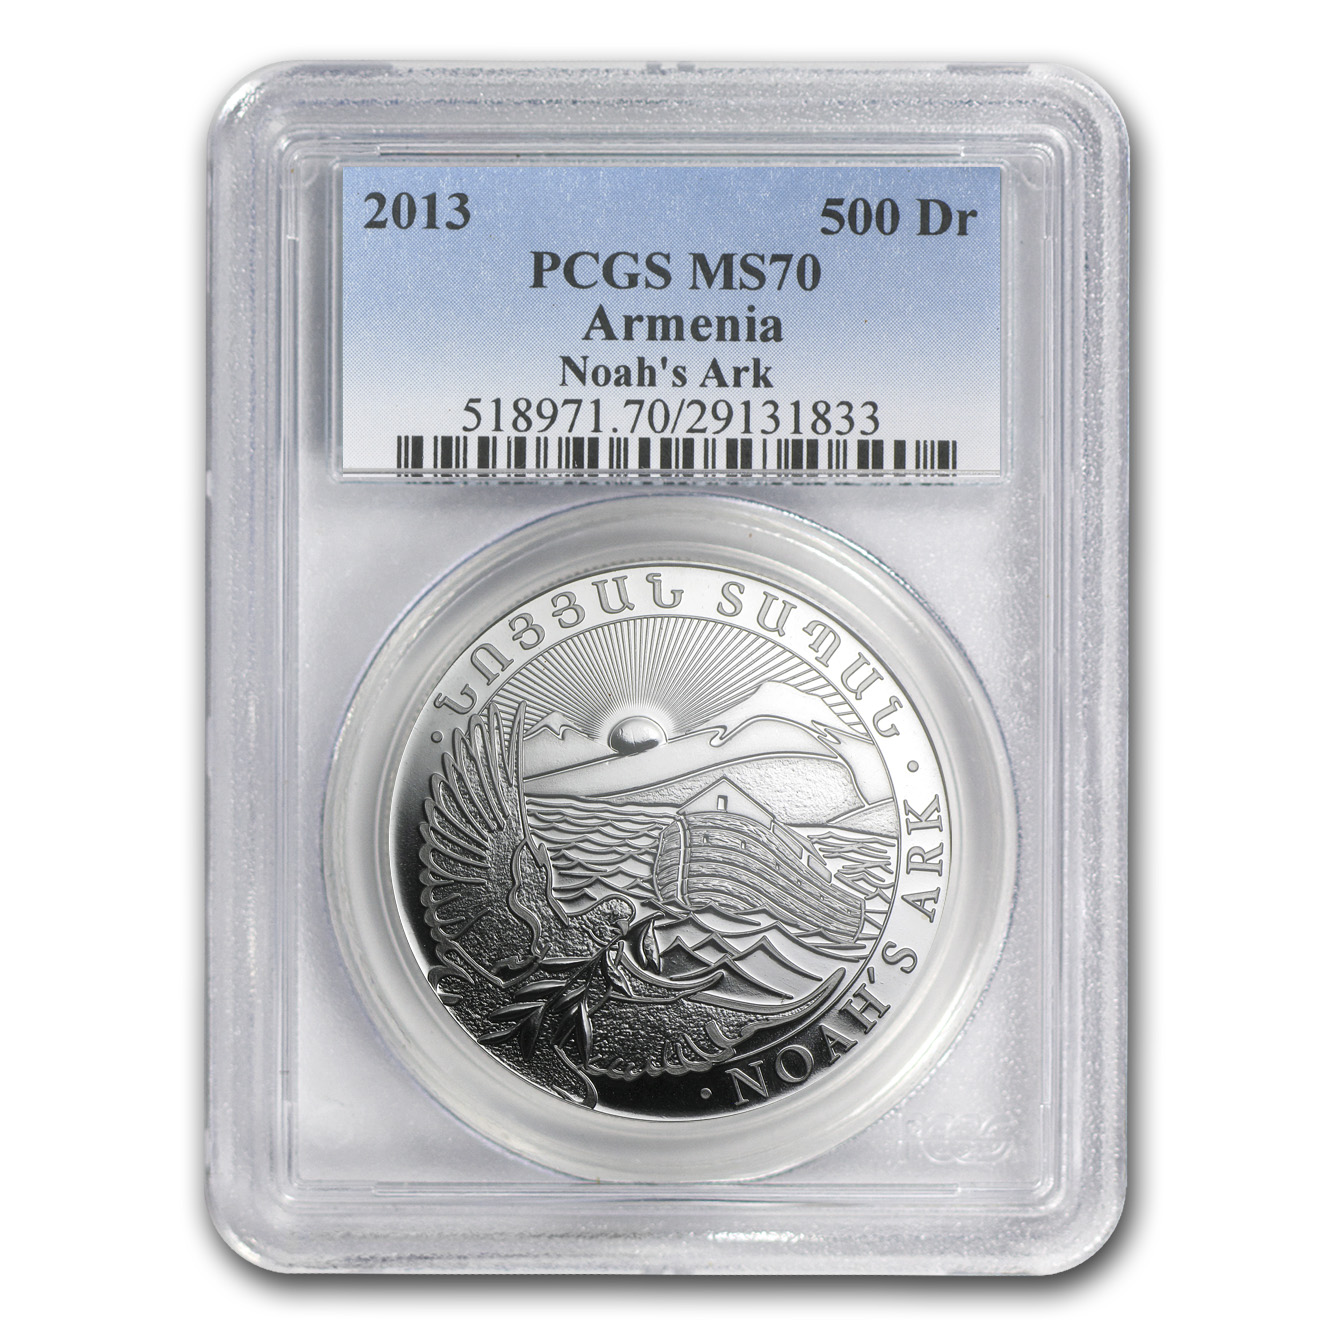 2013 1 oz Silver Armenia 500 Drams Noah's Ark PCGS MS-70